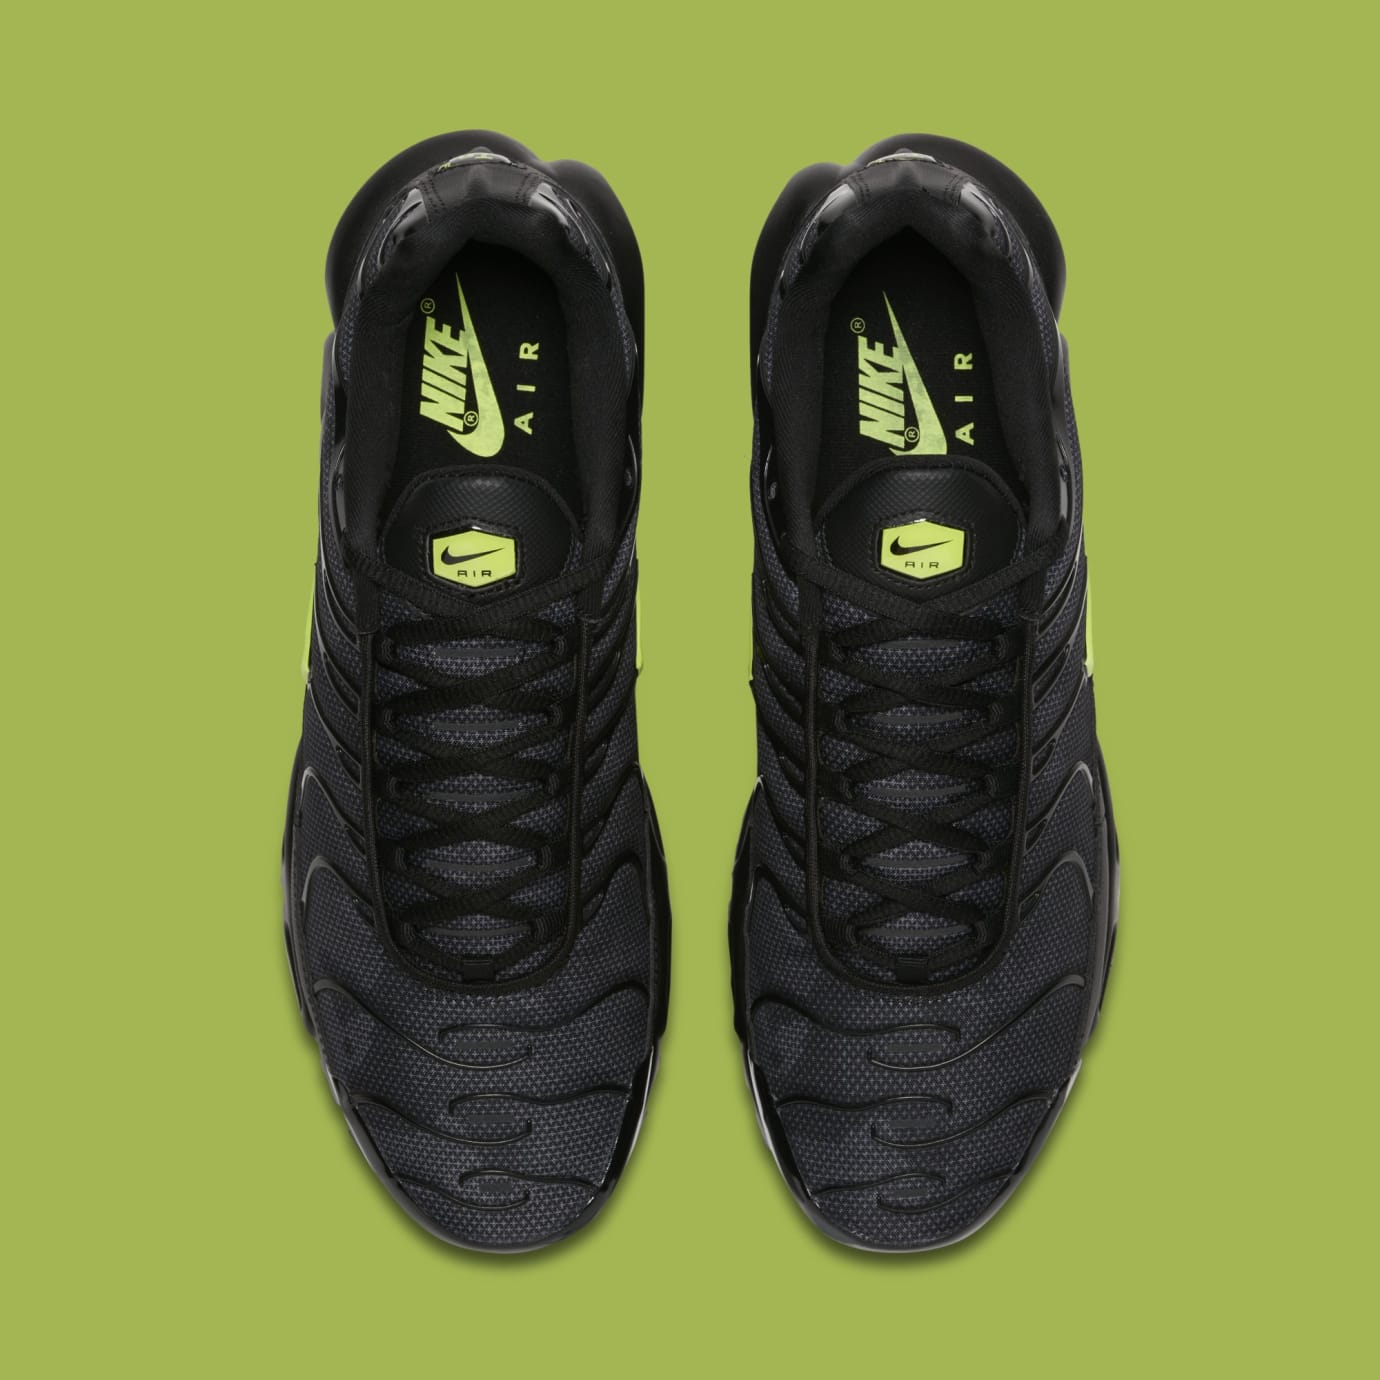 d293a179ecab Image via Nike Nike Air Max Plus  Black Volt Glow-Wolf Grey  AJ2013-001